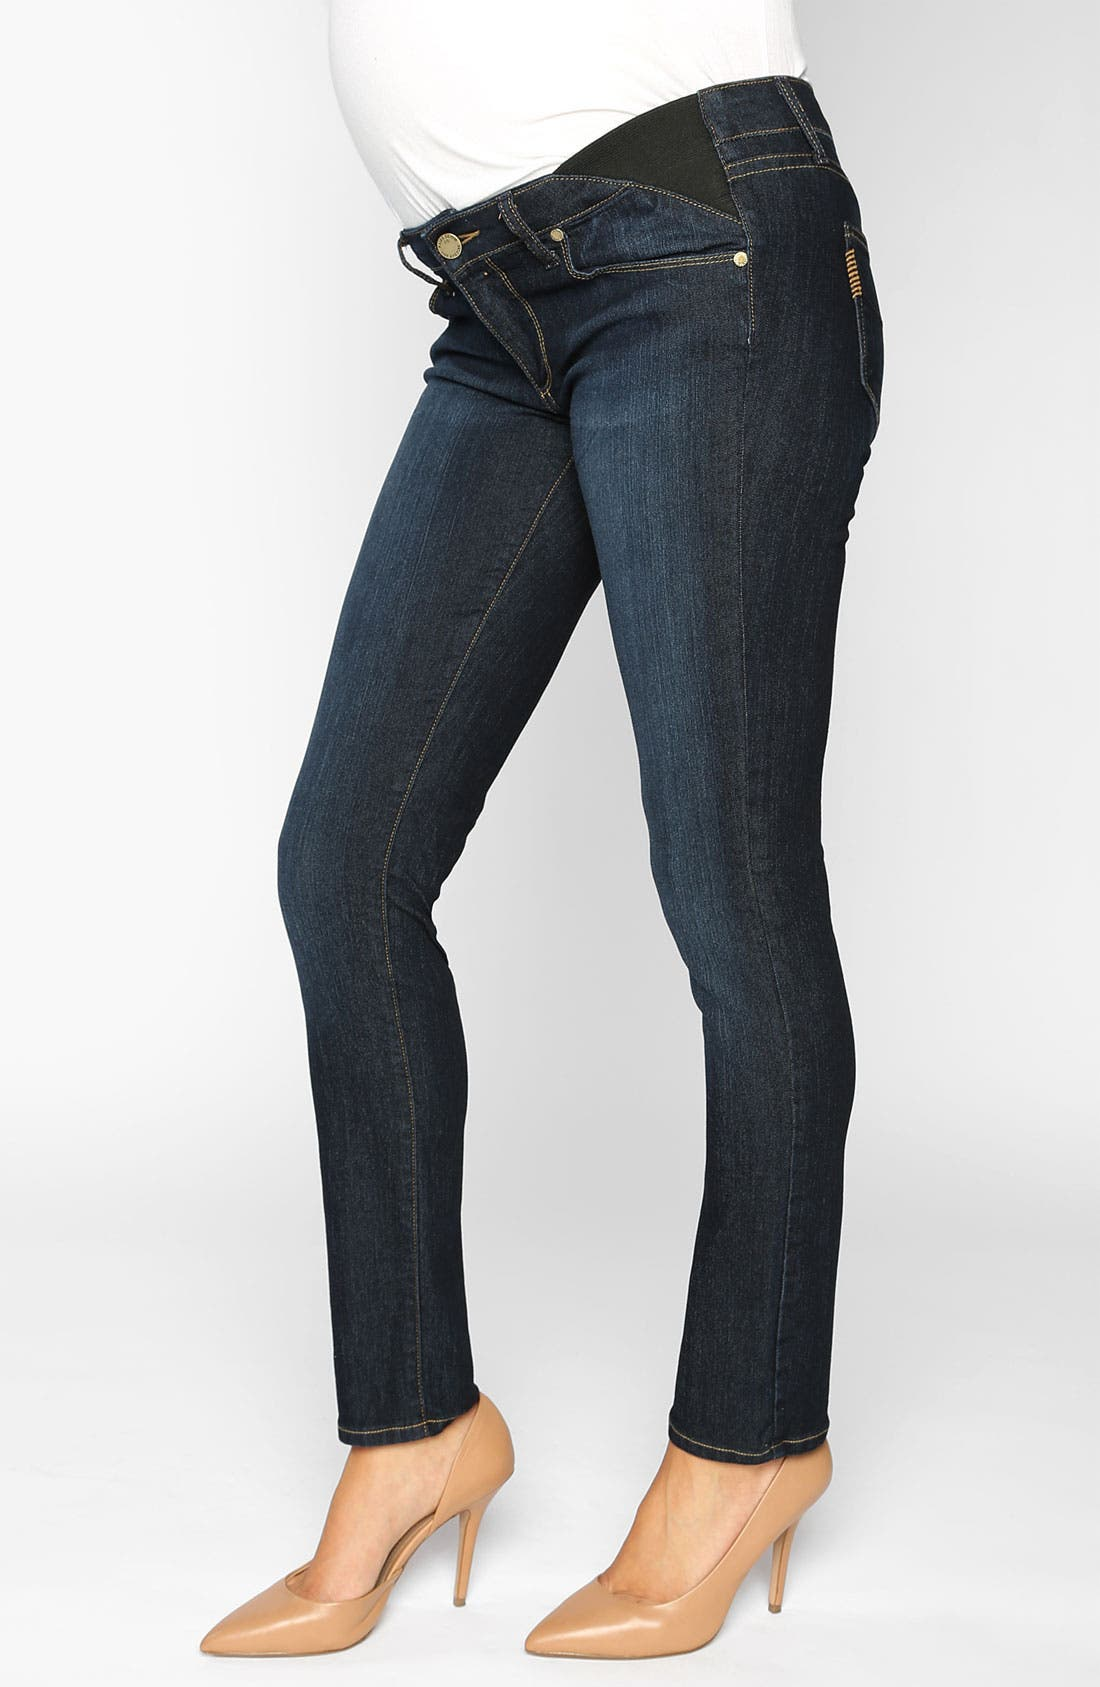 Alternate Image 1 Selected - Paige Denim 'Skyline' Maternity Skinny Jeans (Carson)